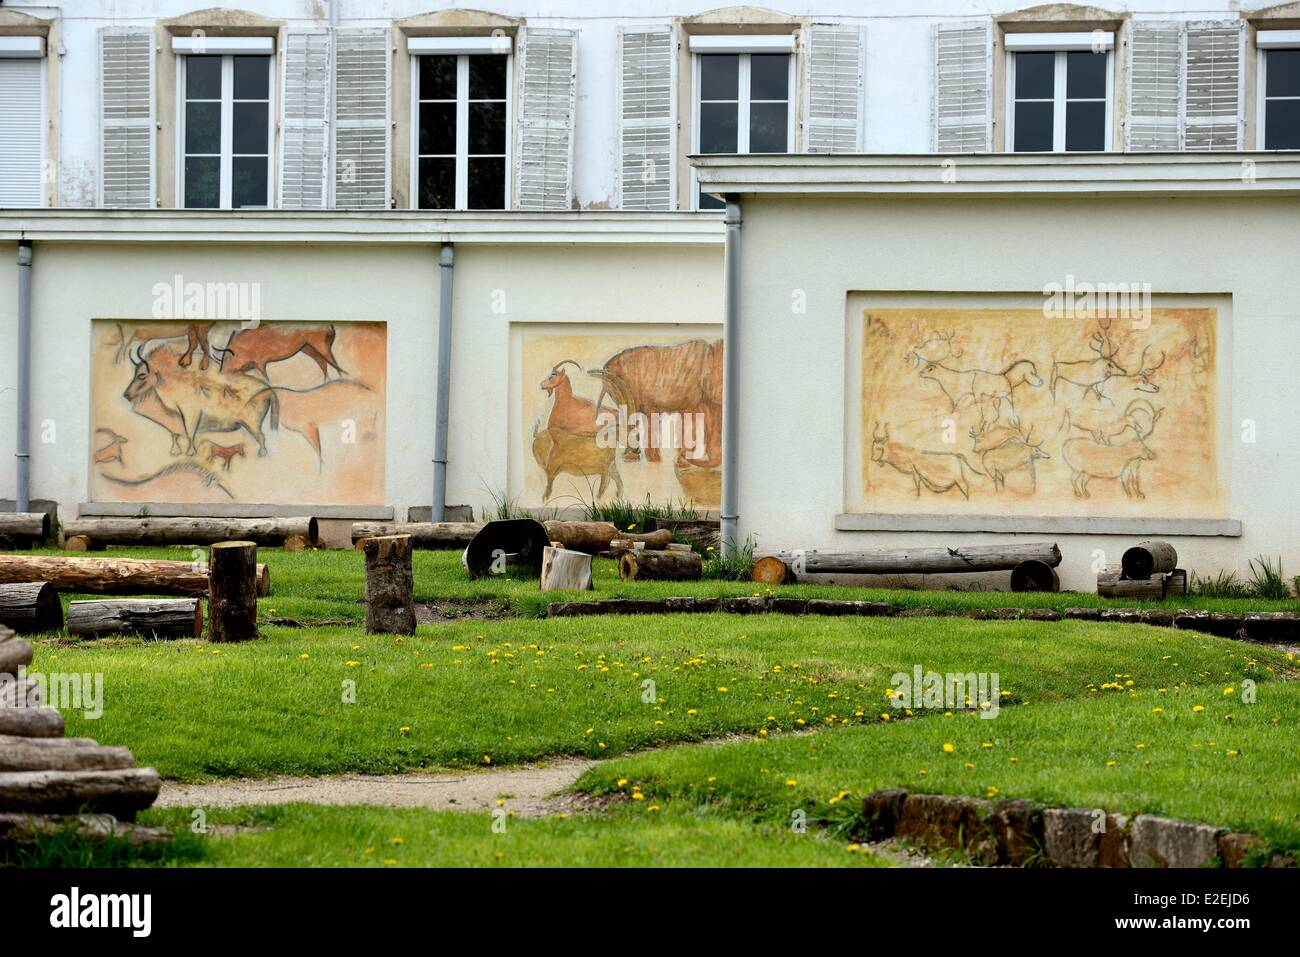 France, Vosges, Darney, former Recollect convent, town hall, Animation Centre of Prehistory - Stock Image